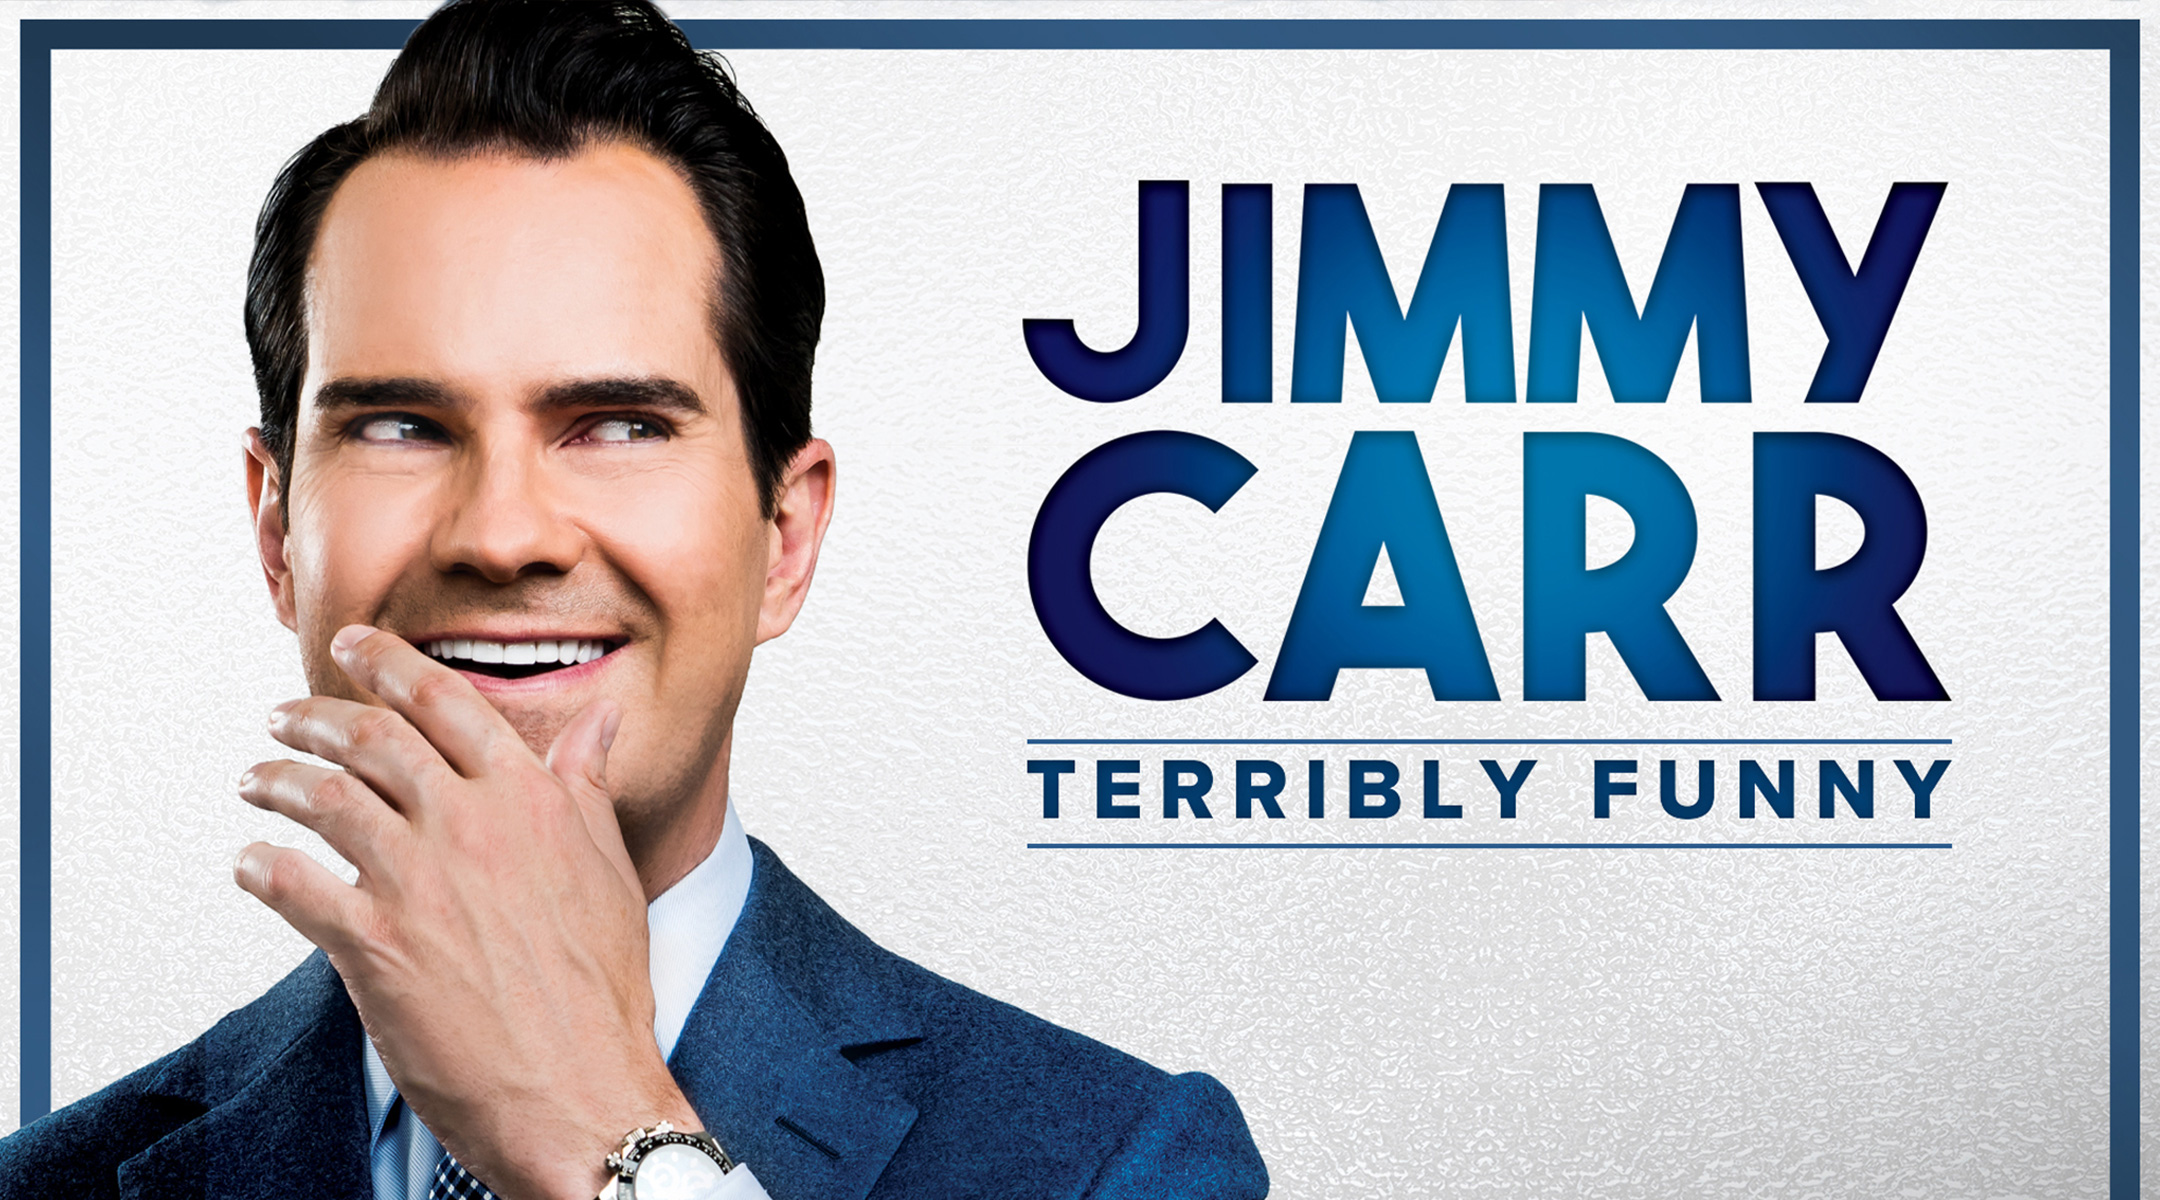 Jimmy Carr - A Terribly Funny Book Tour